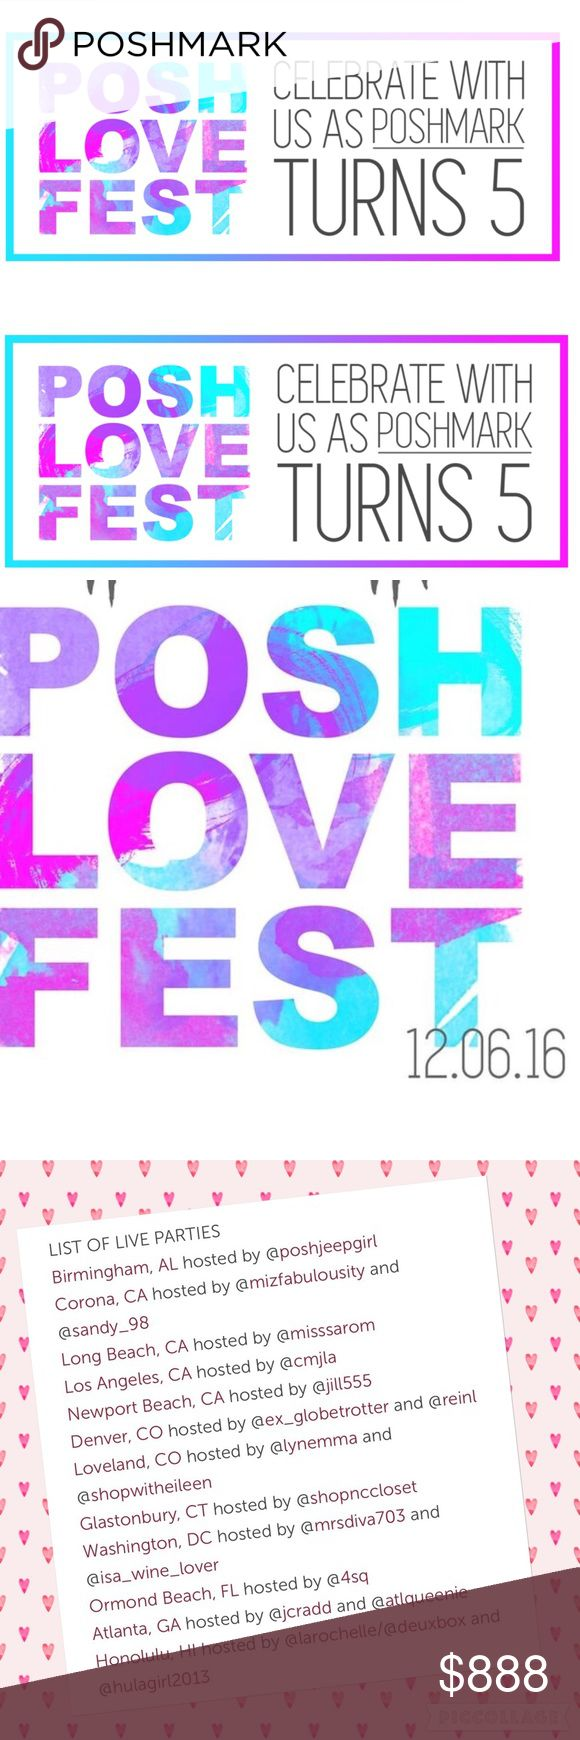 POSH LOVE FEST 2016 yay! Poshmark turns 5 and we have tons of parties happening simultaneously on DEC 6!!!   check Out the party in your area and contact the cohost to join the fun! Celine Bags